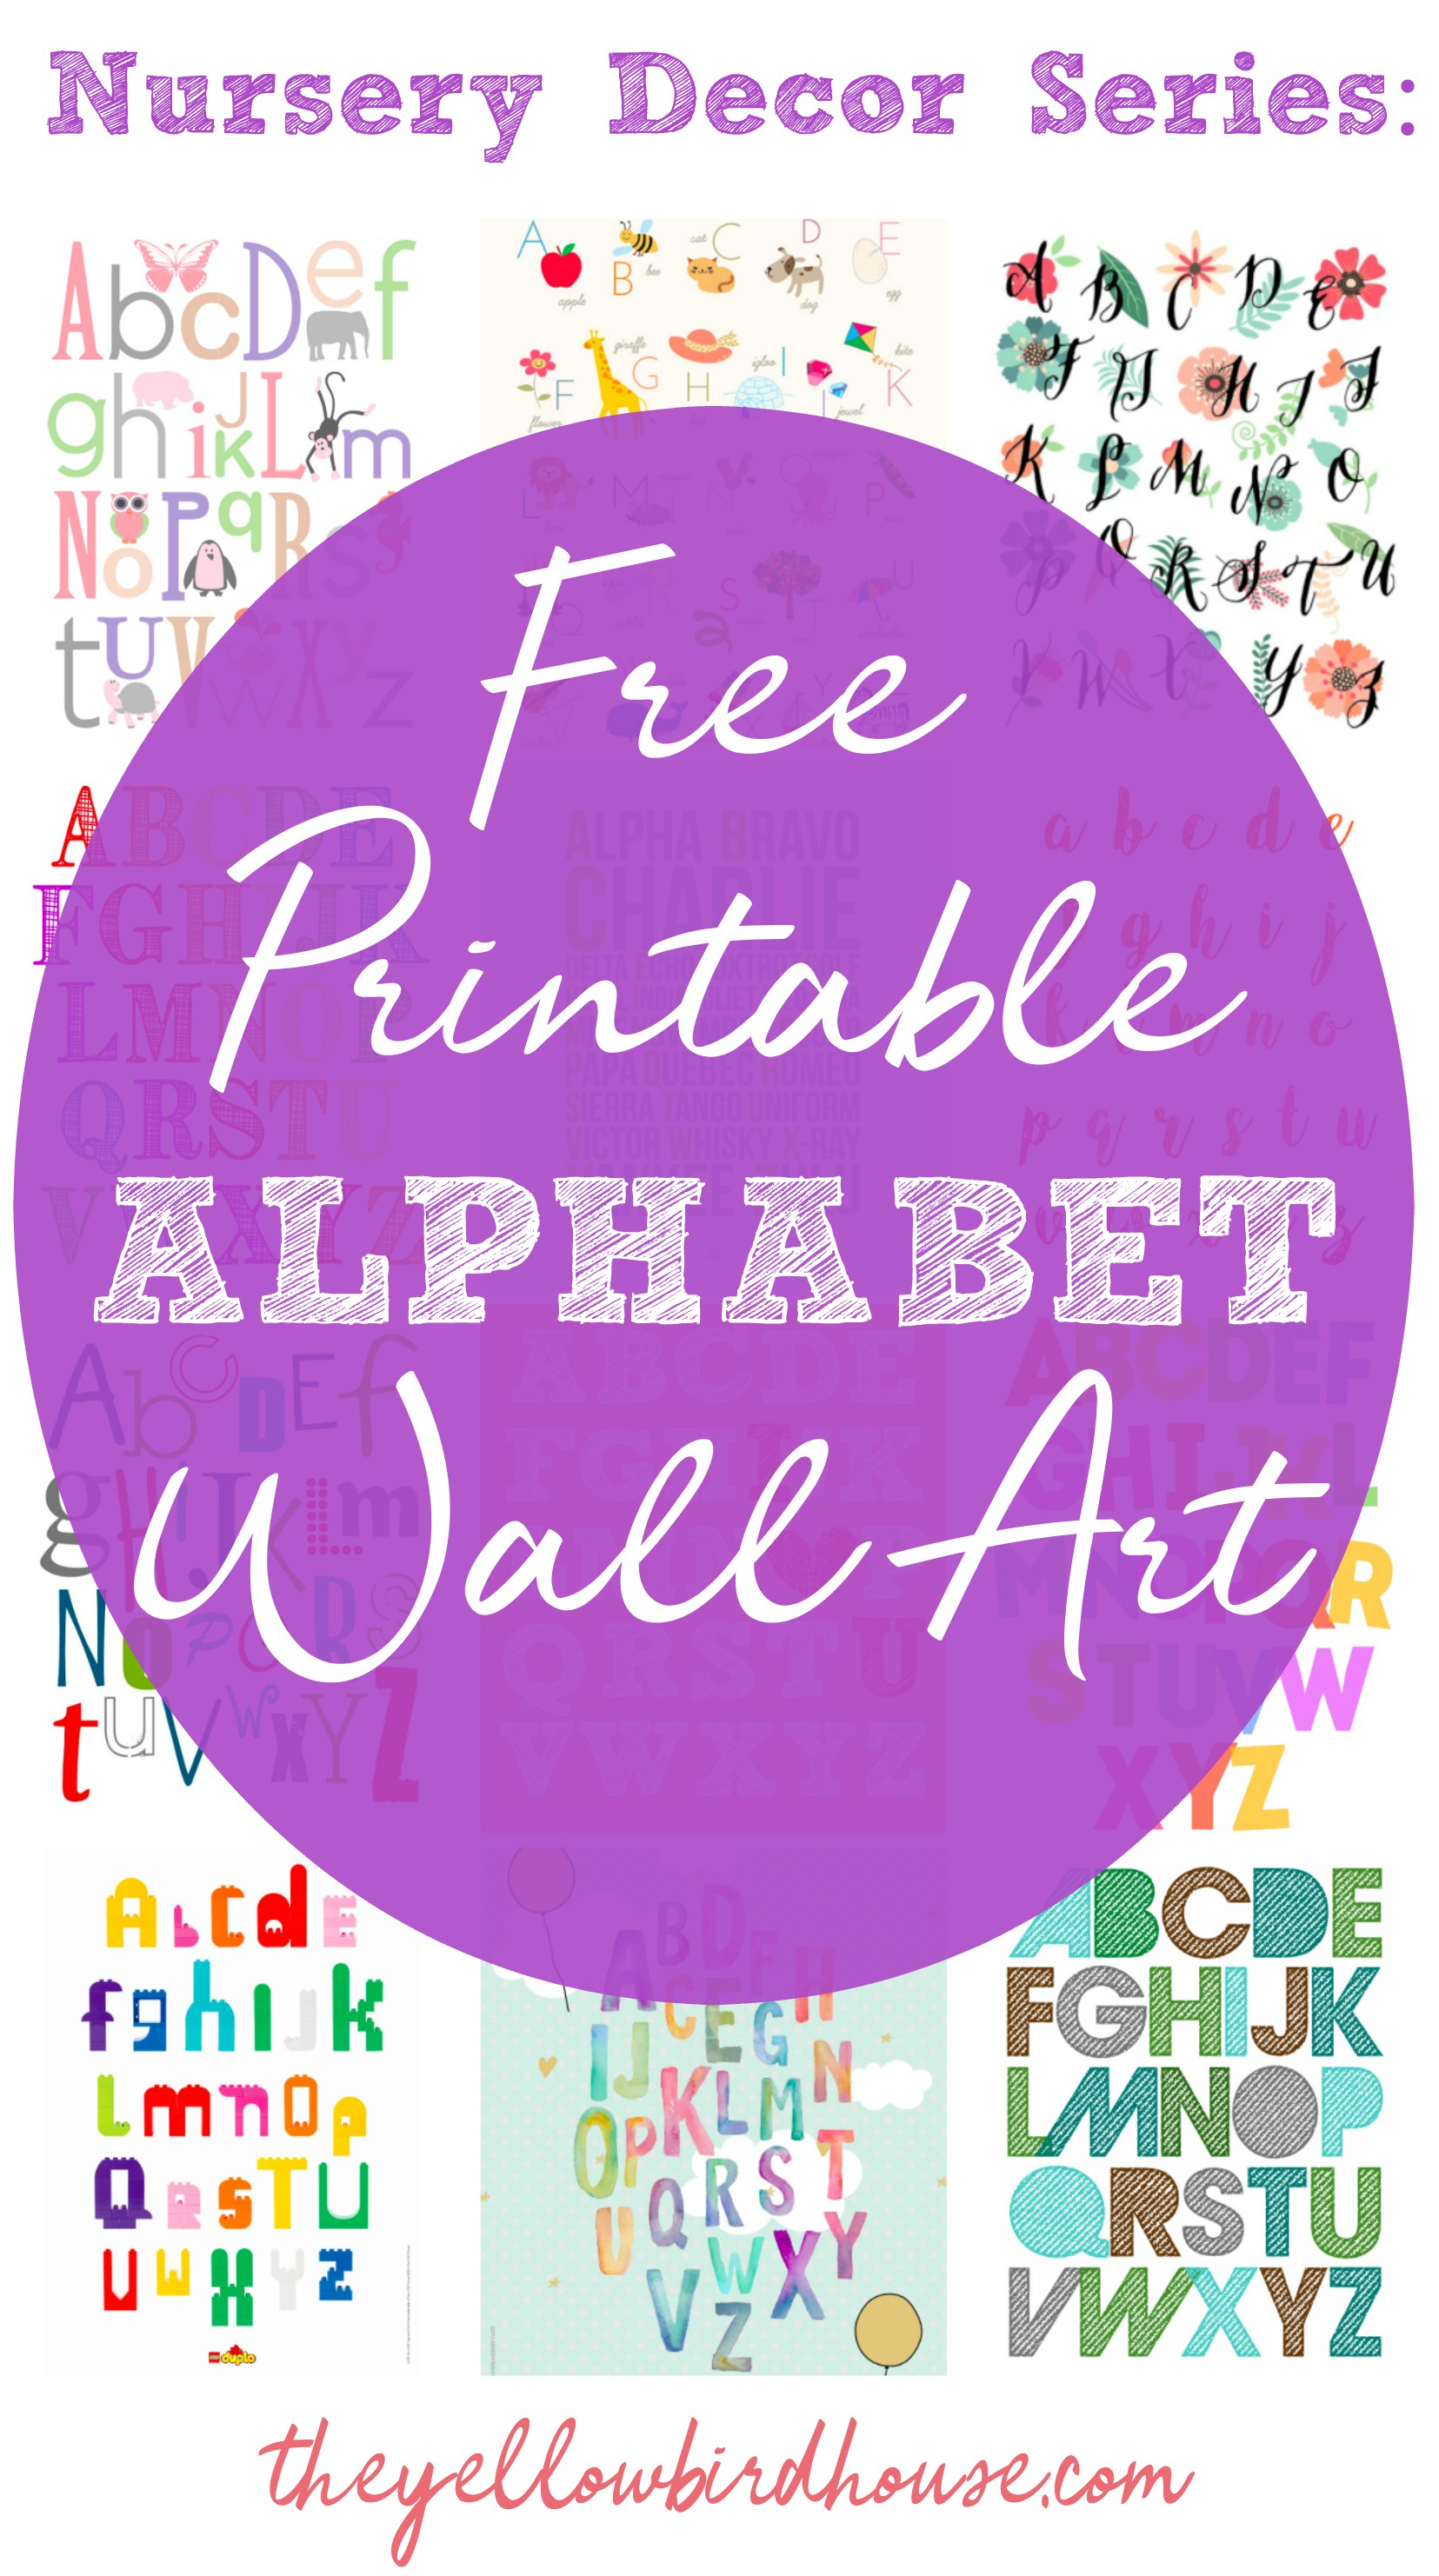 19 Super fun and totally free printable alphabet wall art. Free ABC posters for your kiddo's bedroom. Alphabet nursery prints are a fun and creative way to decorate a child's bedroom and help them with their ABC's at the same time! Win!